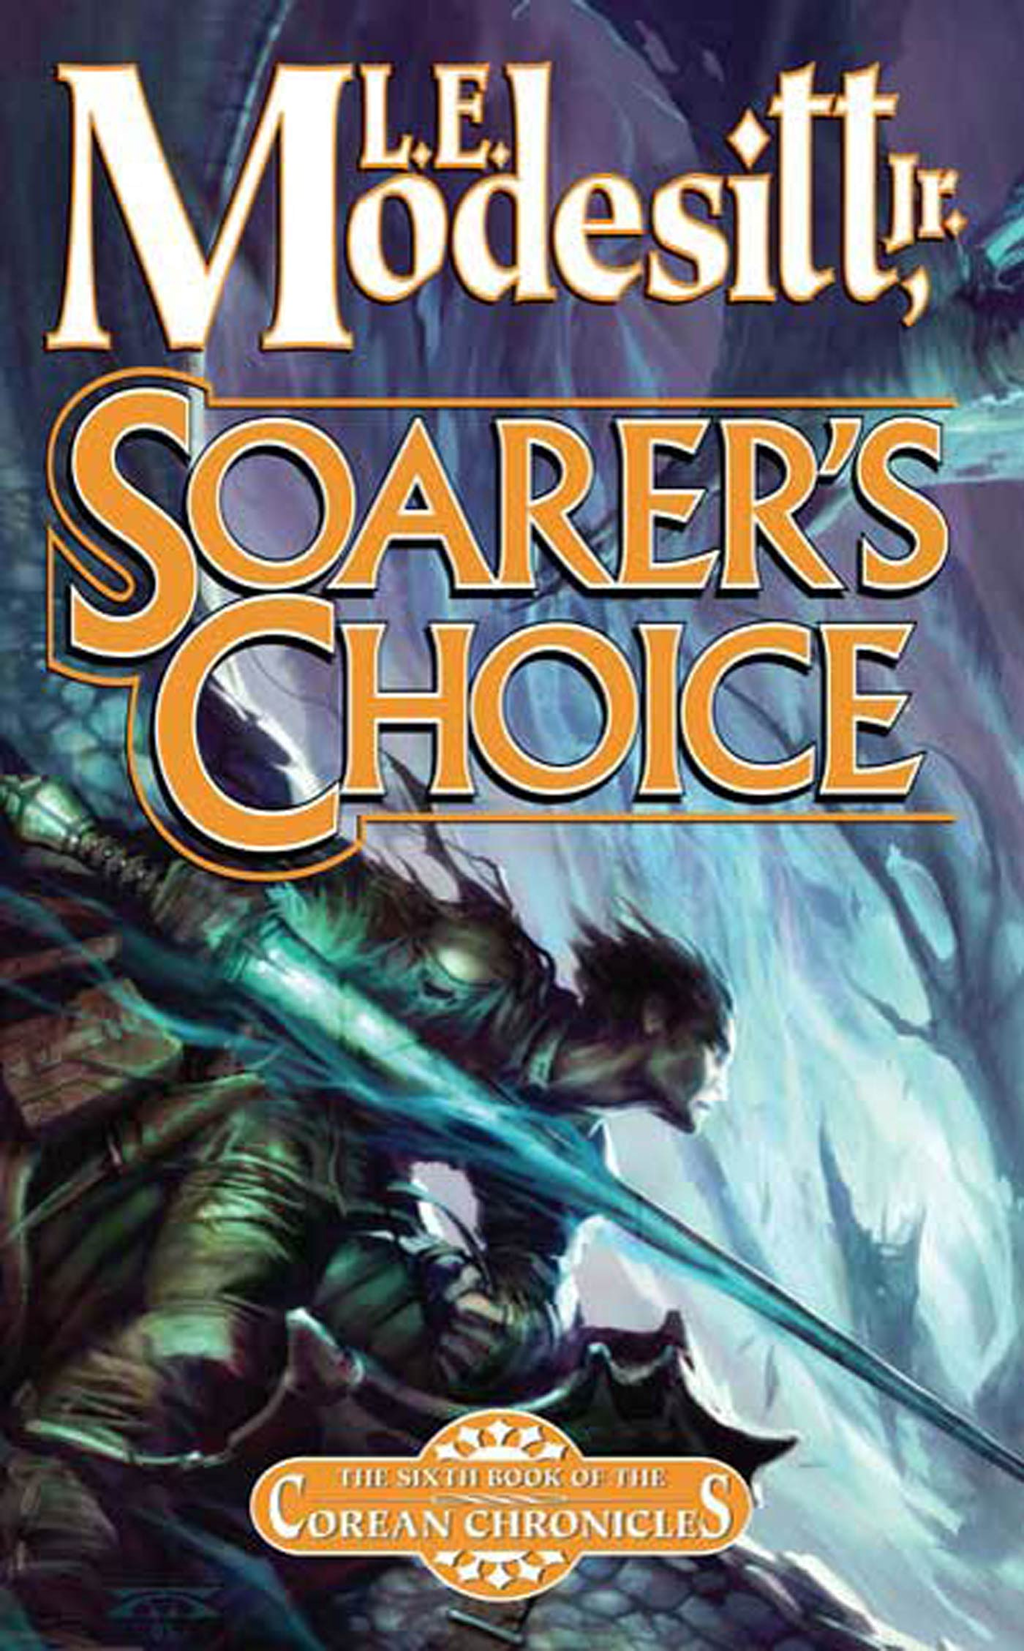 Soarer's Choice By: L. E. Modesitt